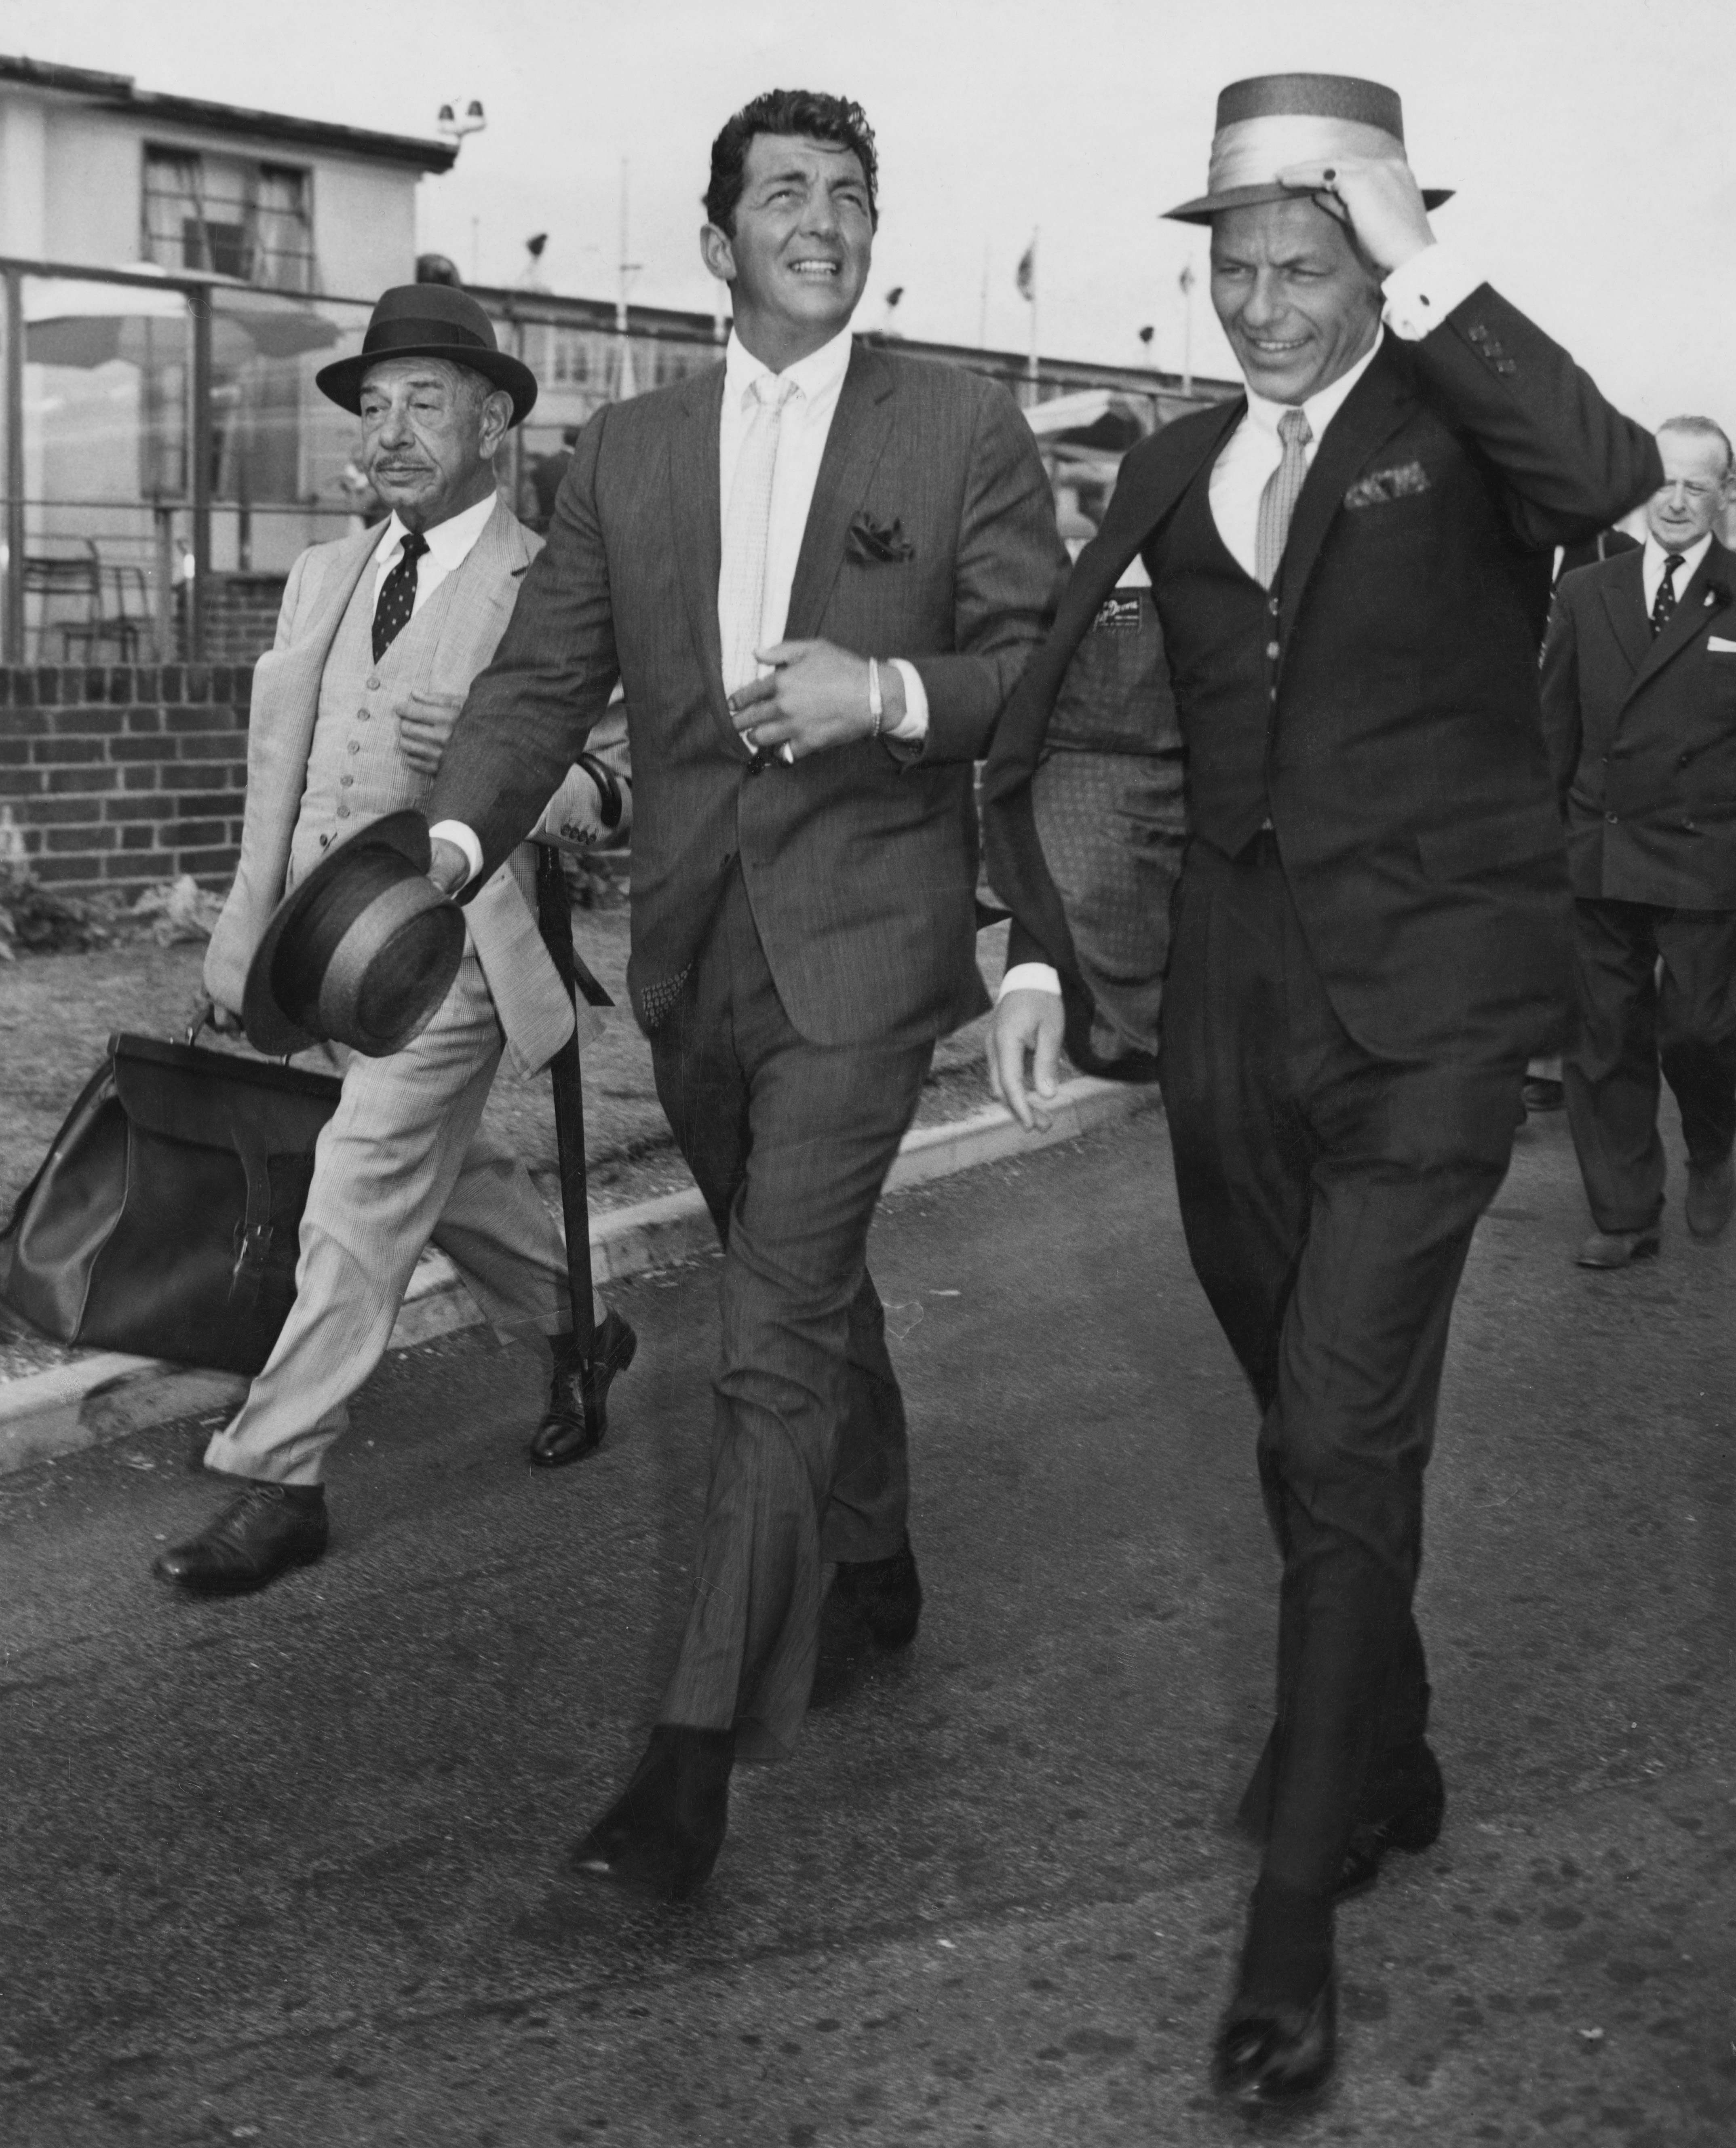 American singers and actors Dean Martin (1917 - 1995) (centre) and Frank Sinatra (right) arriving at London airport, their friend and famed Beverly Hills restauranteur Mike Romanoff is with them. (Photo by J Wilds/Getty Images)